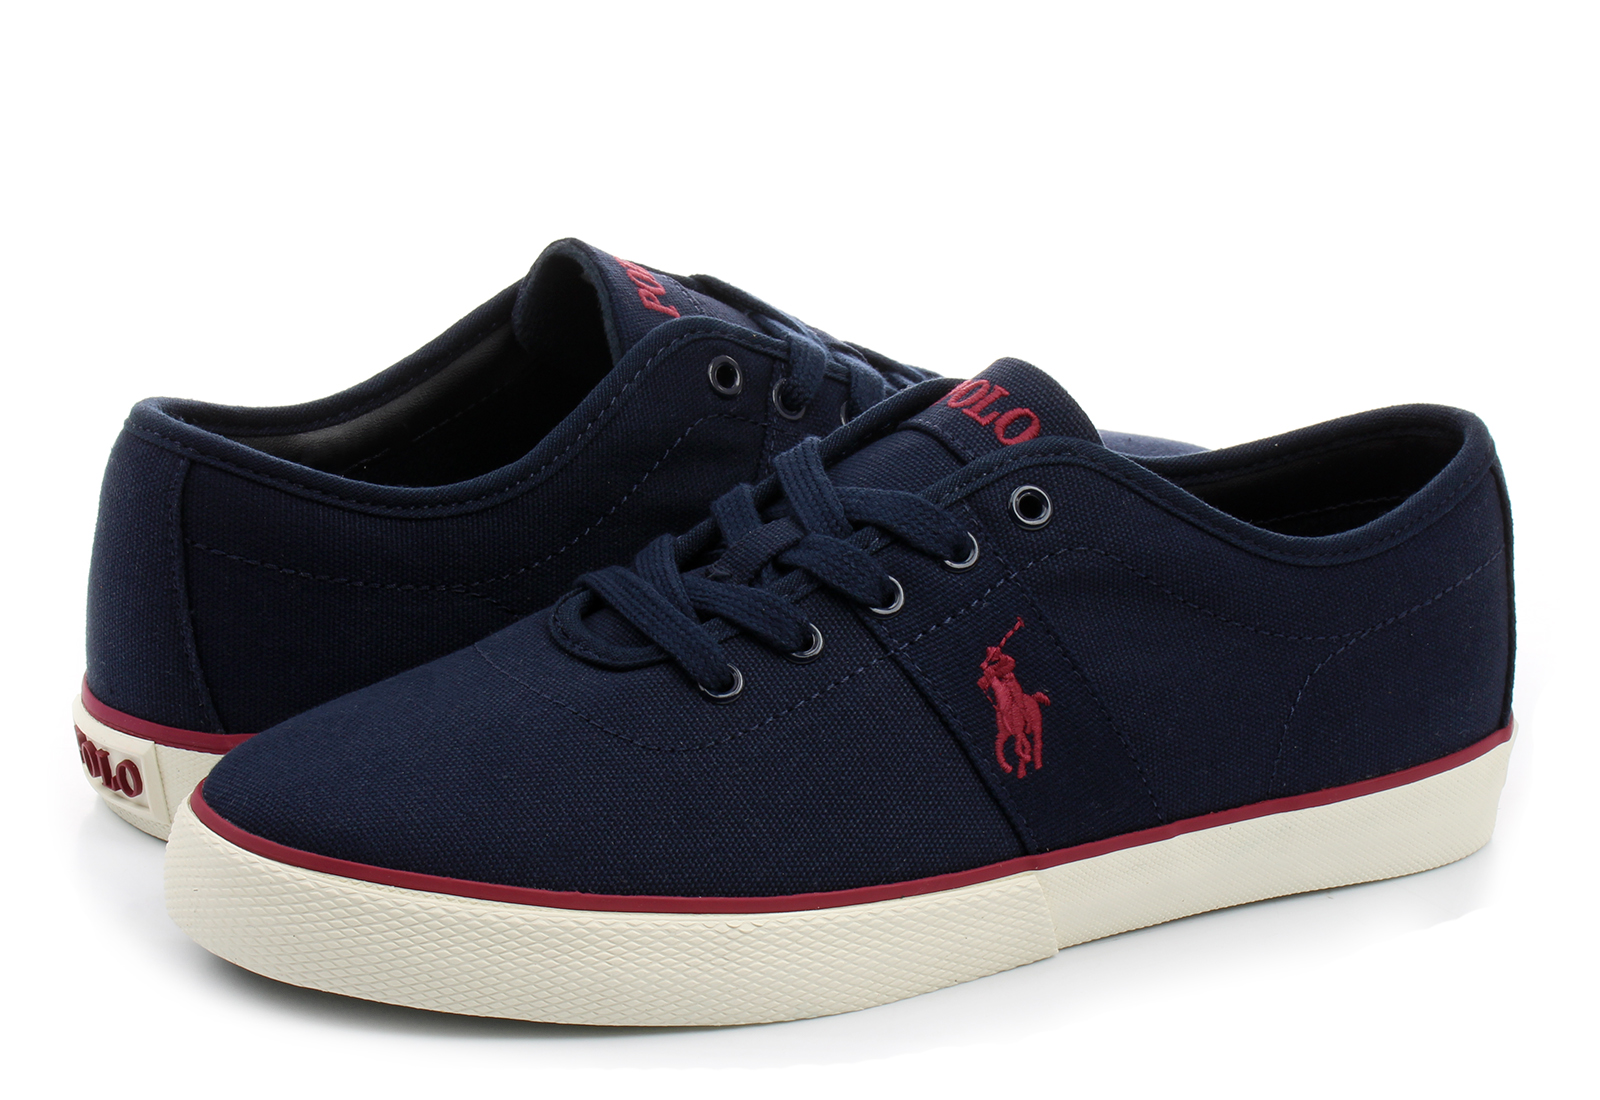 Lauren Ralph SneakersAnd Boots Polo 816690652003 For Shoes Halford Shop Ne Online KTl13FJc